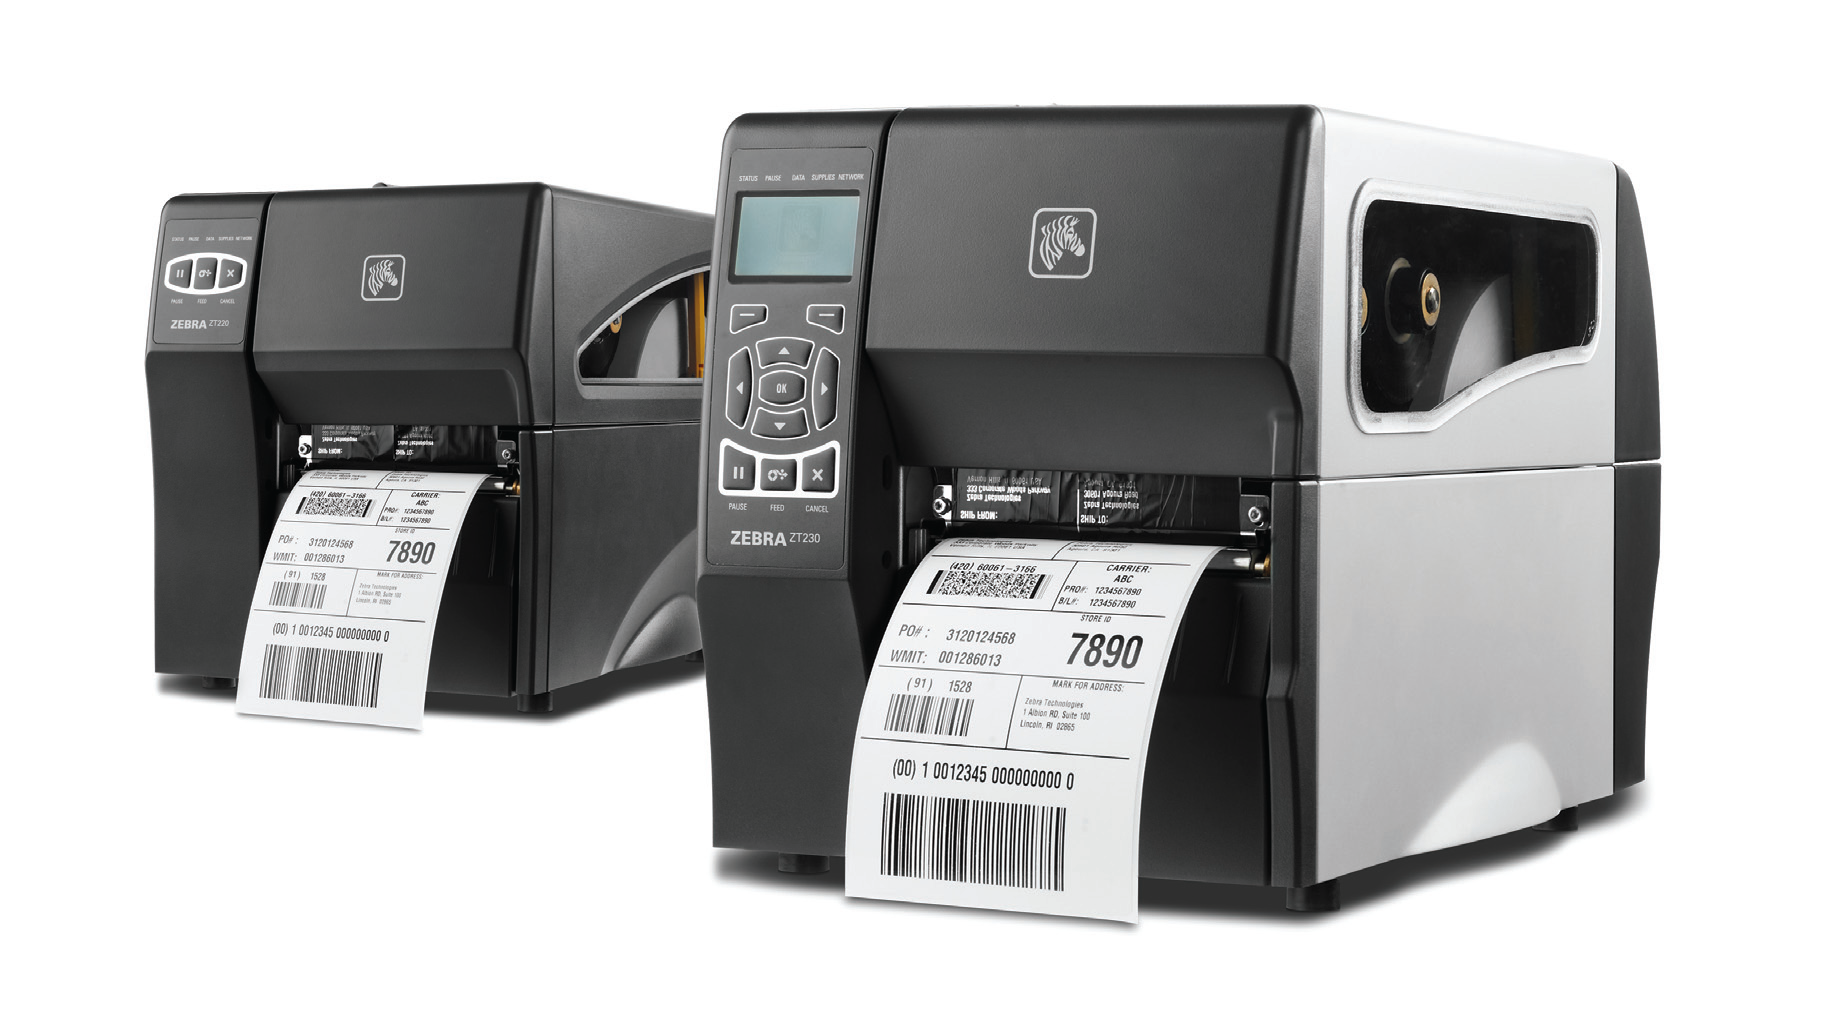 Image of Zebra ZT200 Series Printer from Emkat.